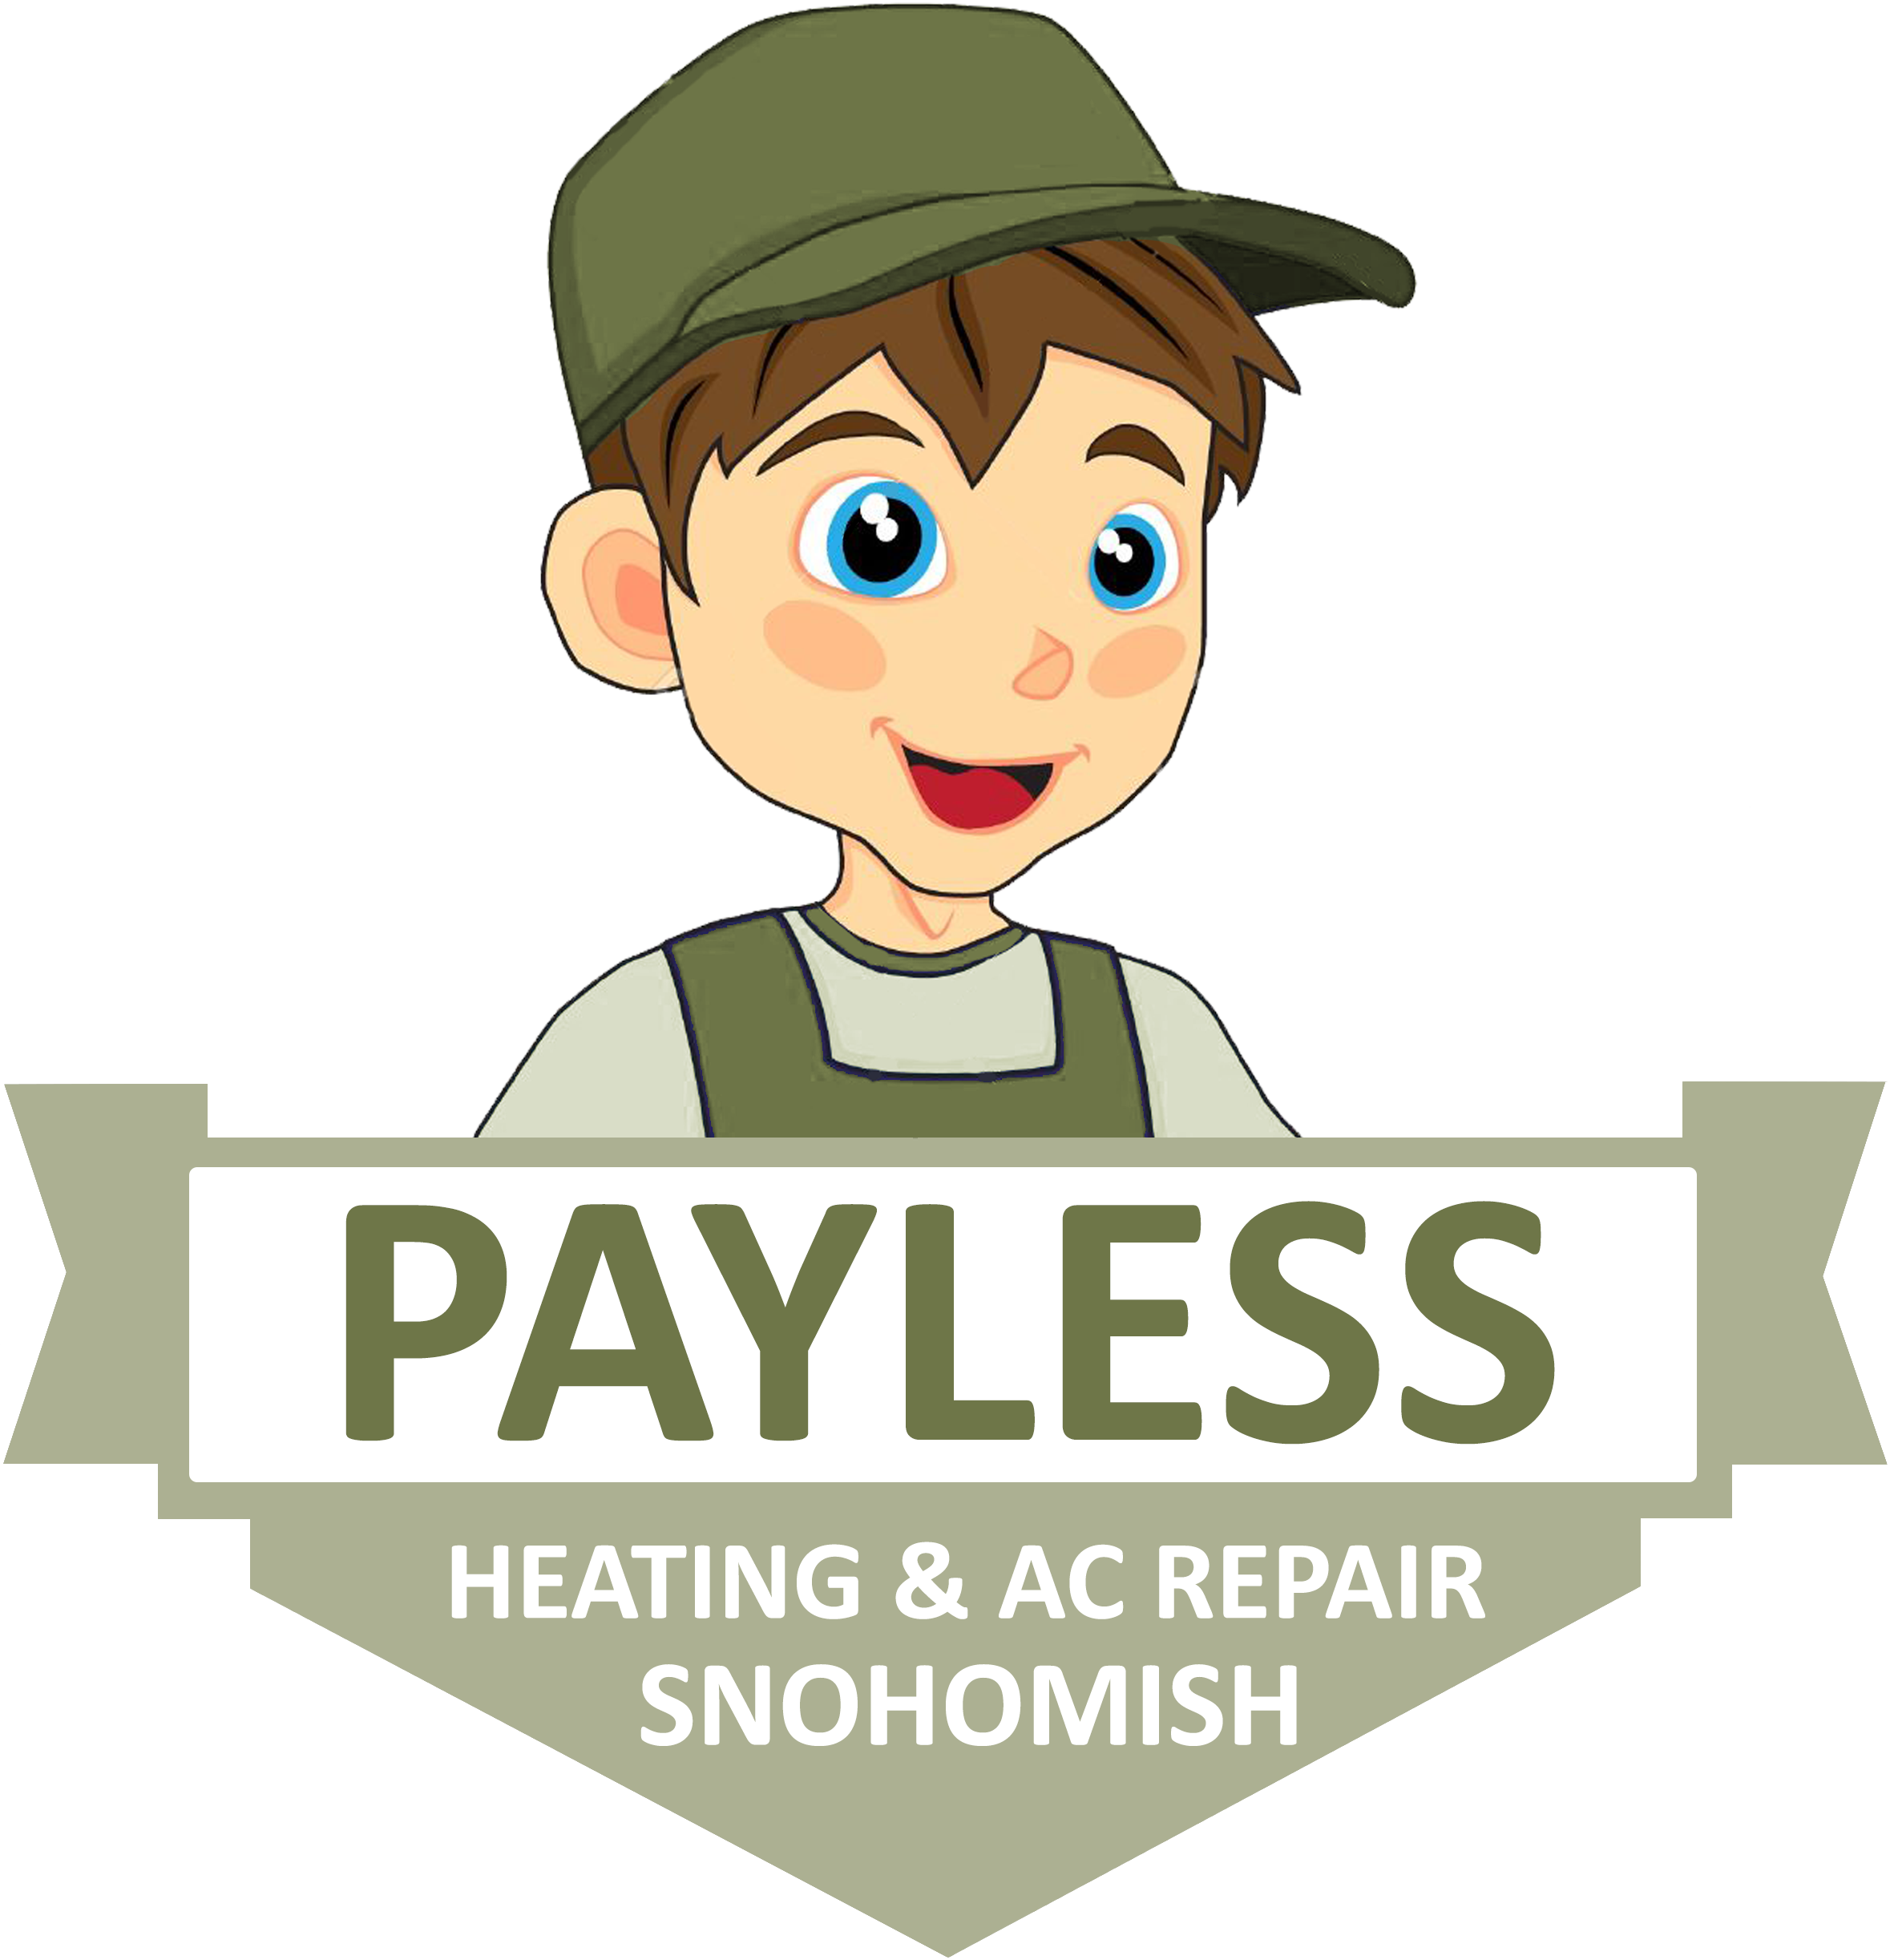 When You Need A Ac Repair Heater Service Company In Snohomish Contact Payless Heating And Ac Repair Snohomish For Quality Services With Emergency Response